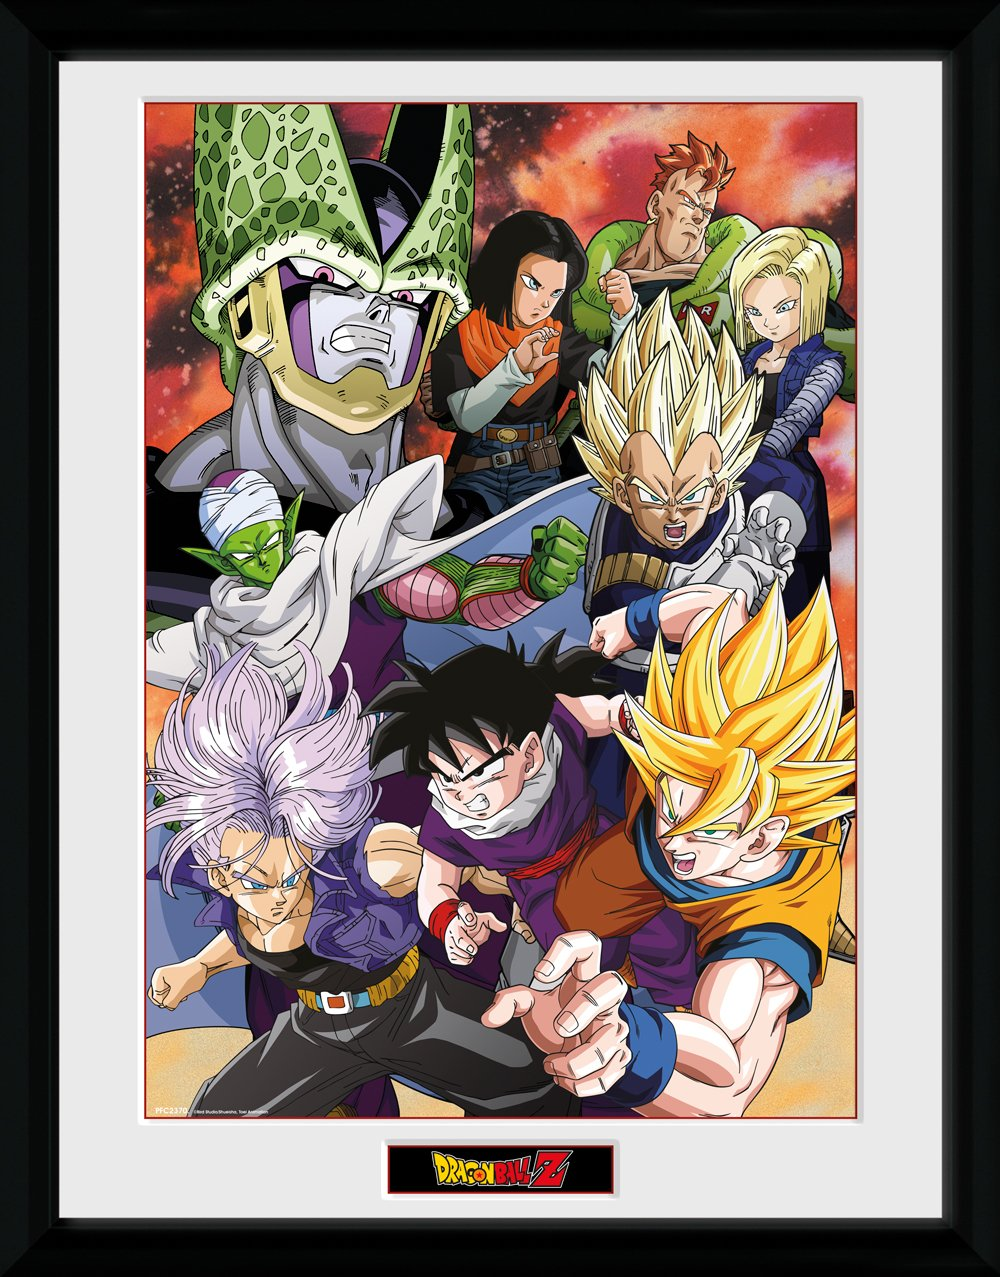 Tagged with dragonball z film and tv anime